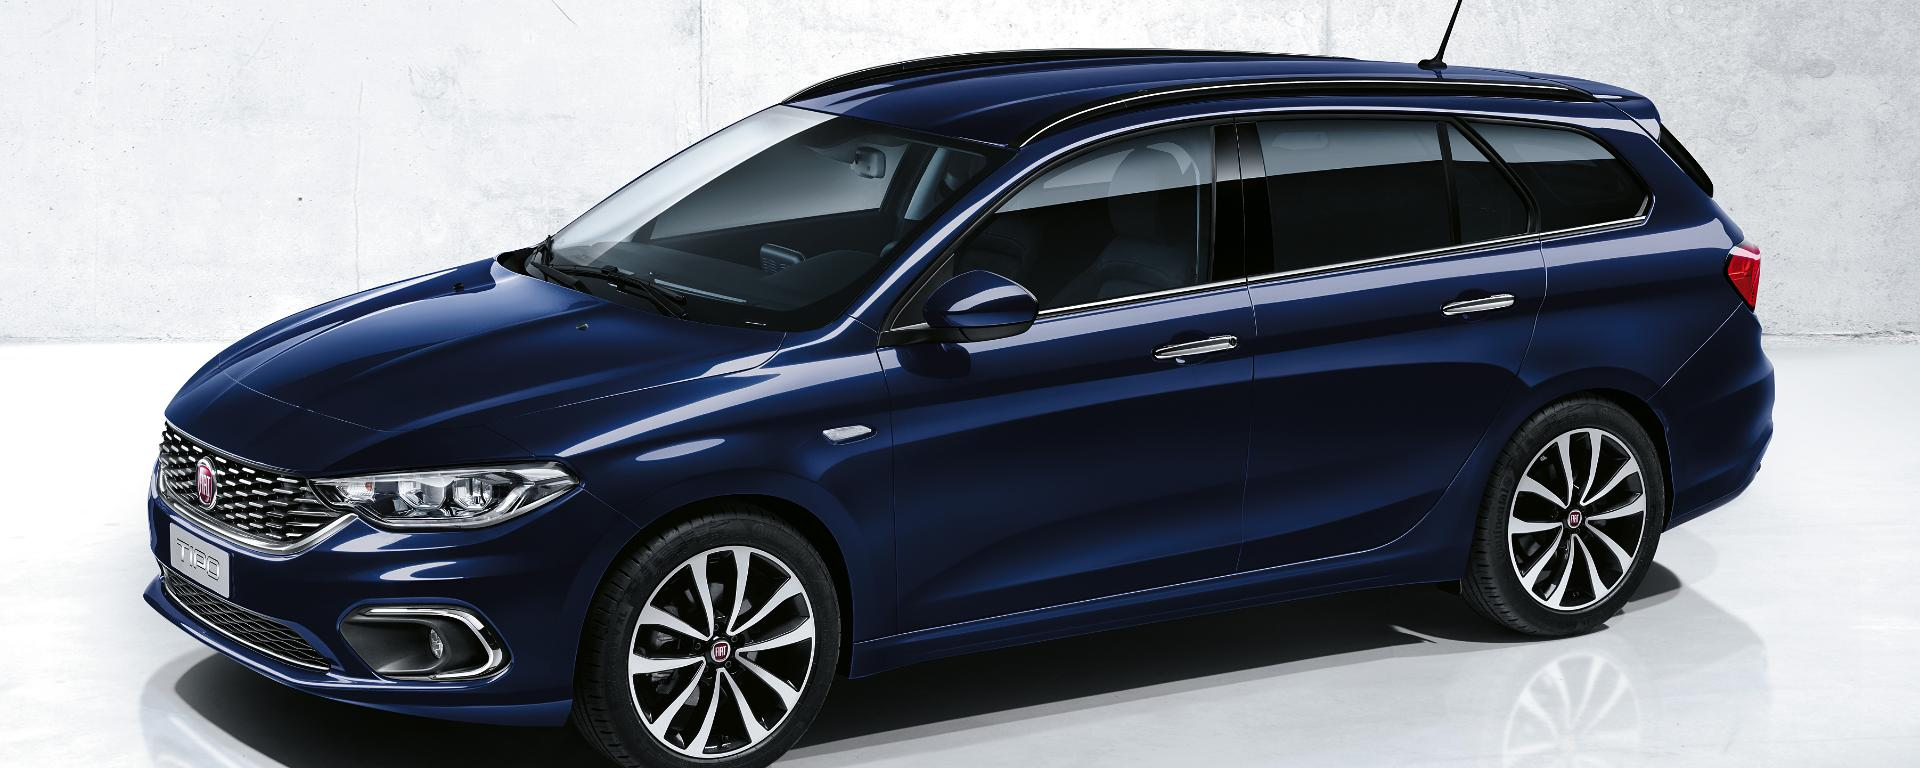 Fiat Tipo Stationwagon leasen